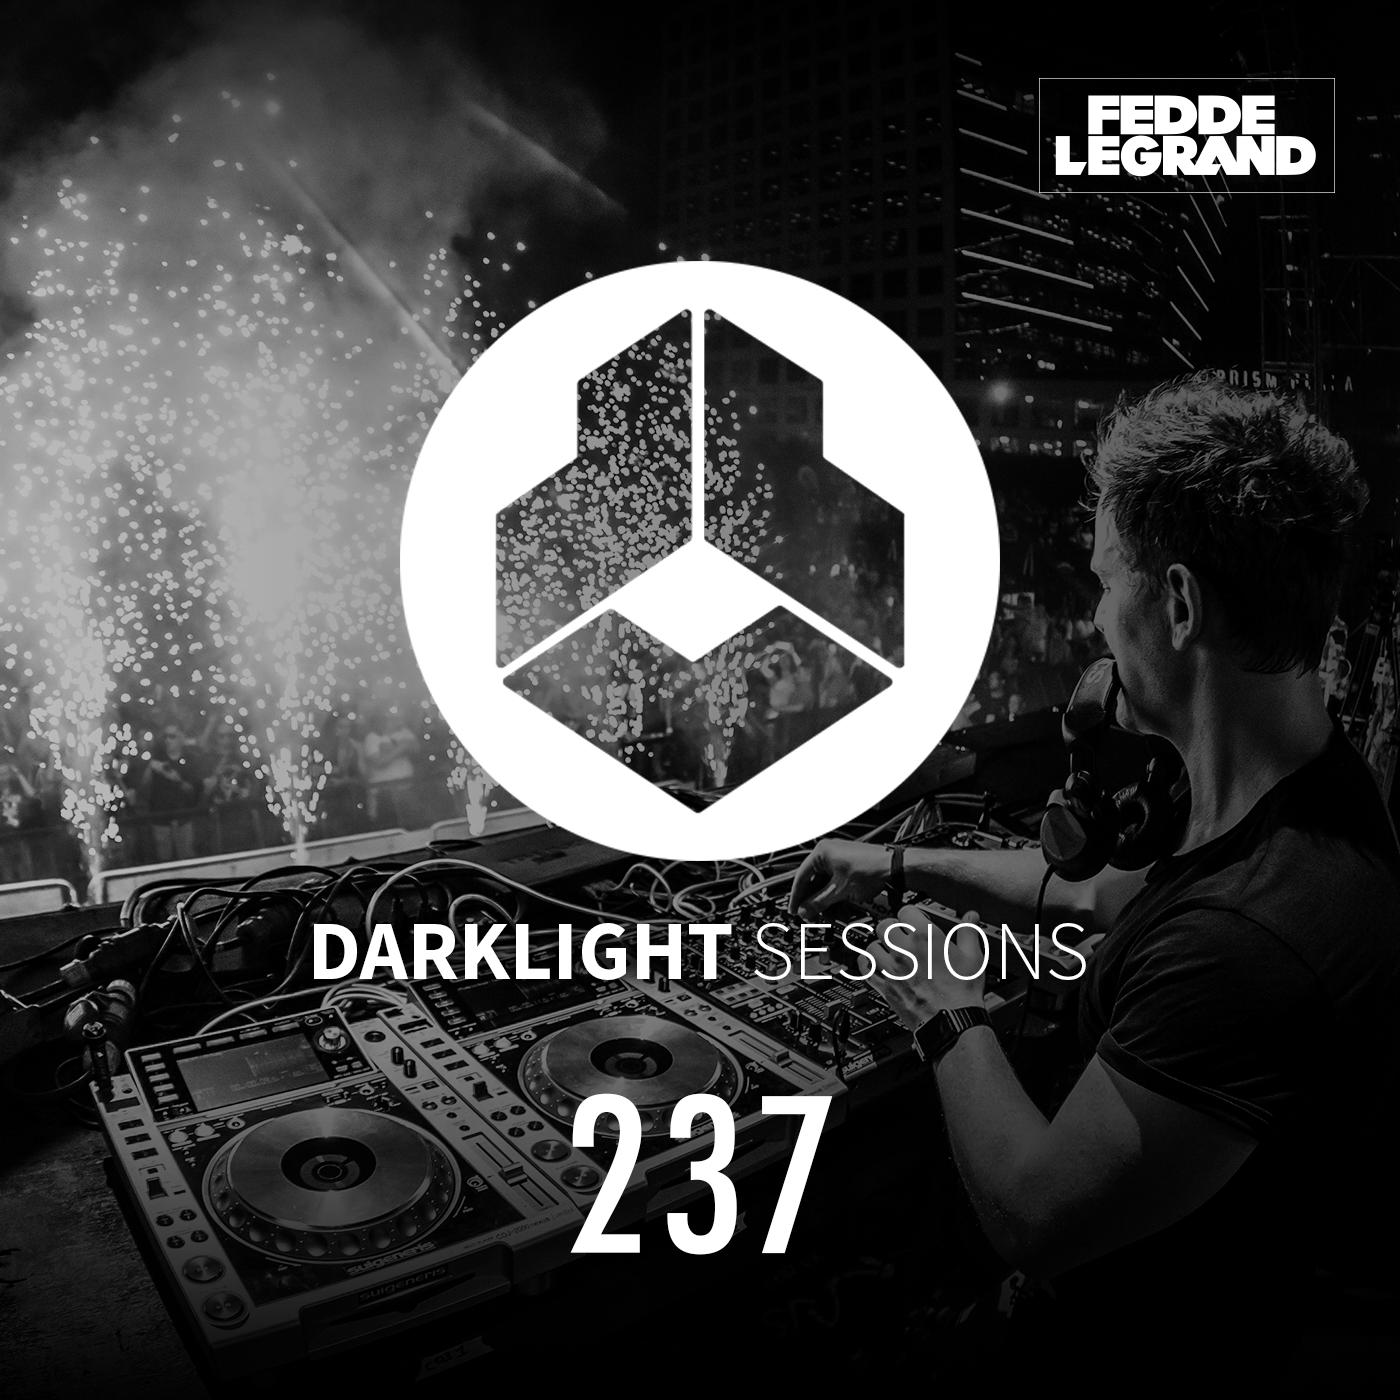 Darklight Sessions 237